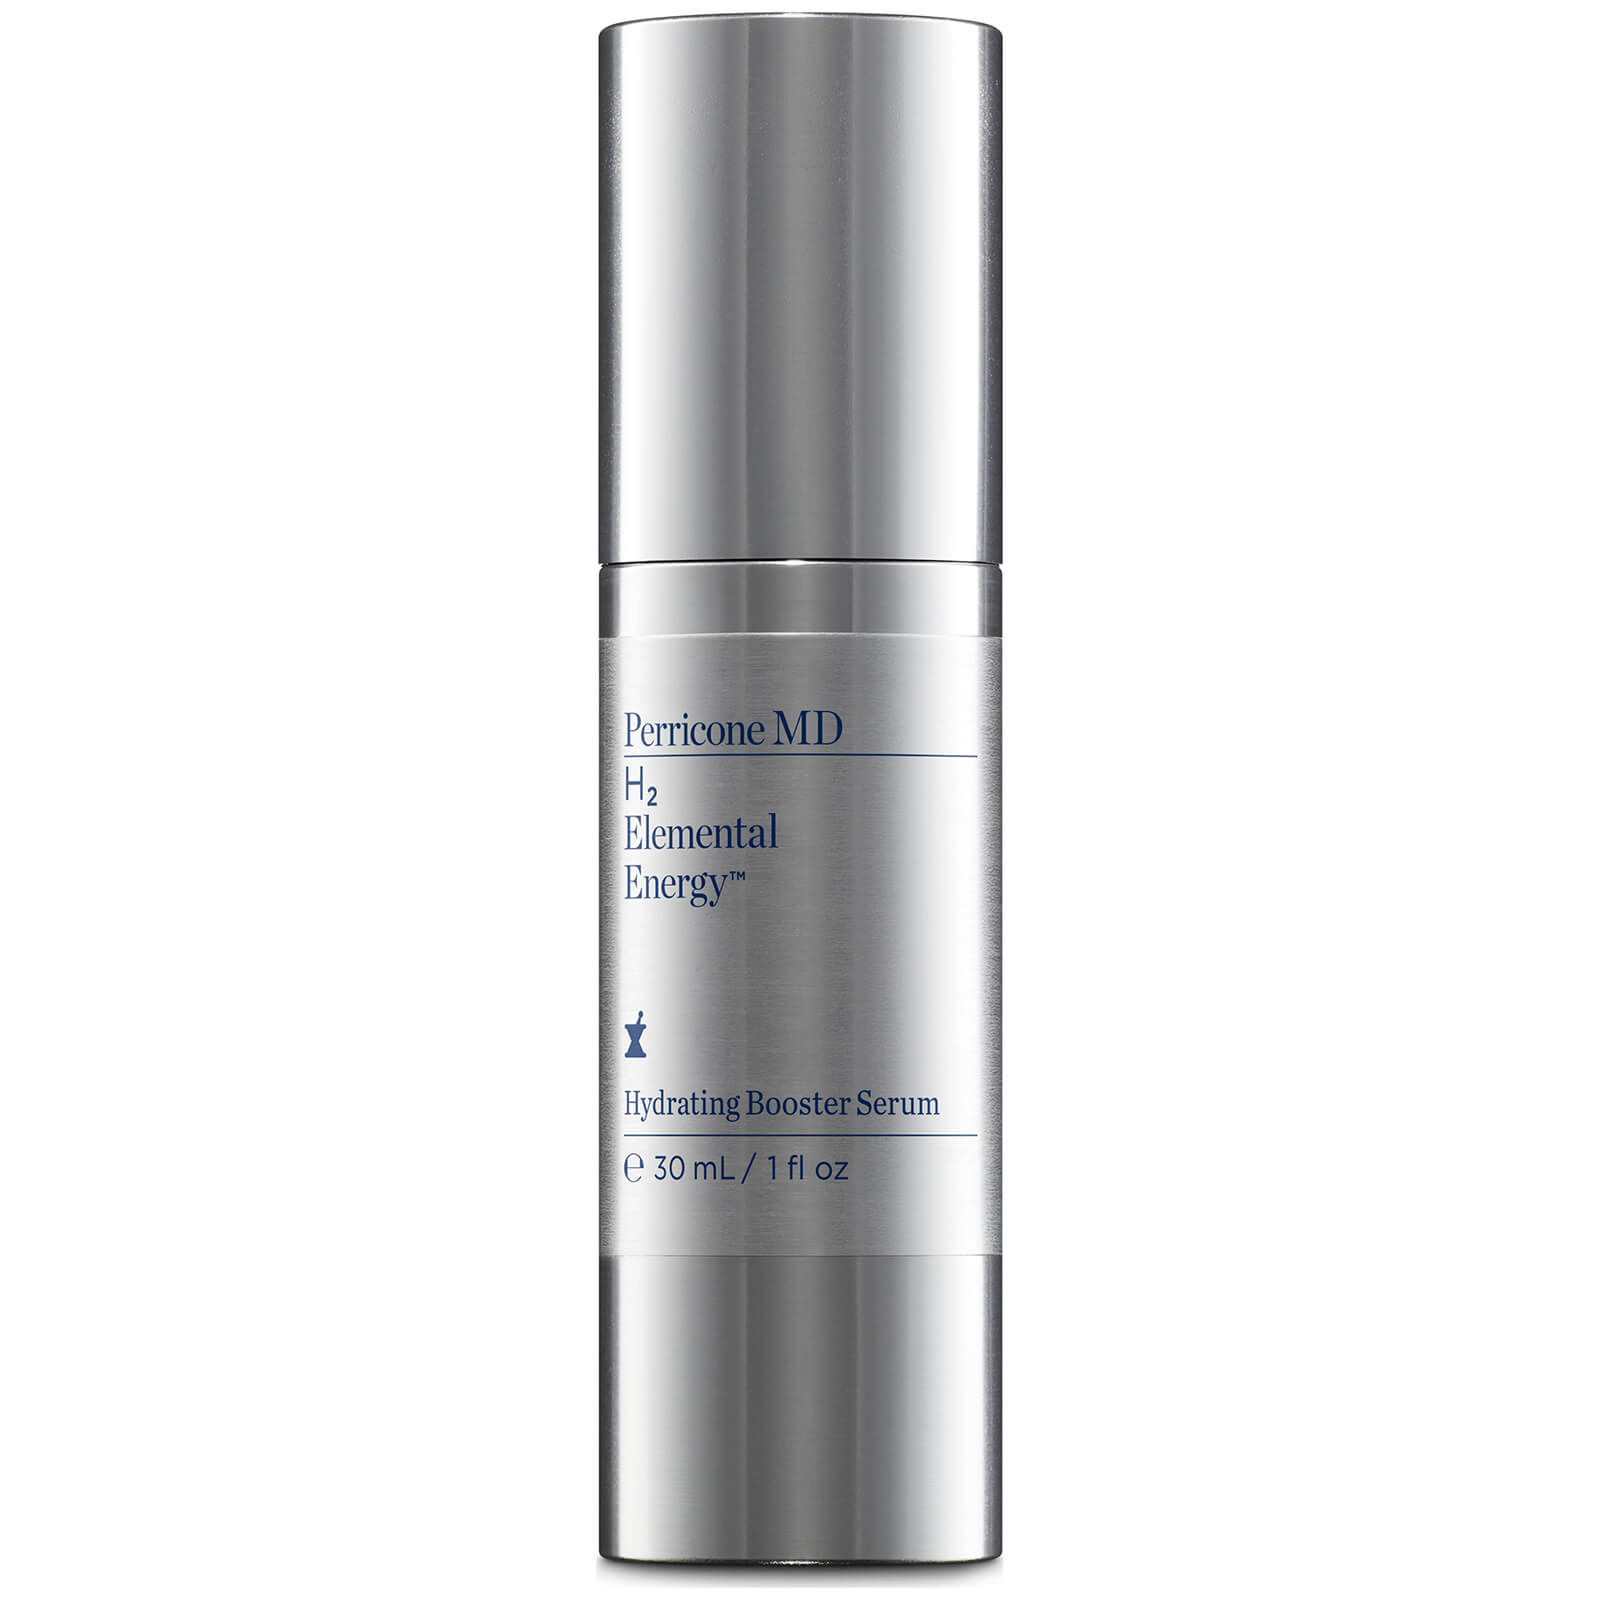 Perricone MD H2 Elemental Energy Hydrating Booster Serum 30ml